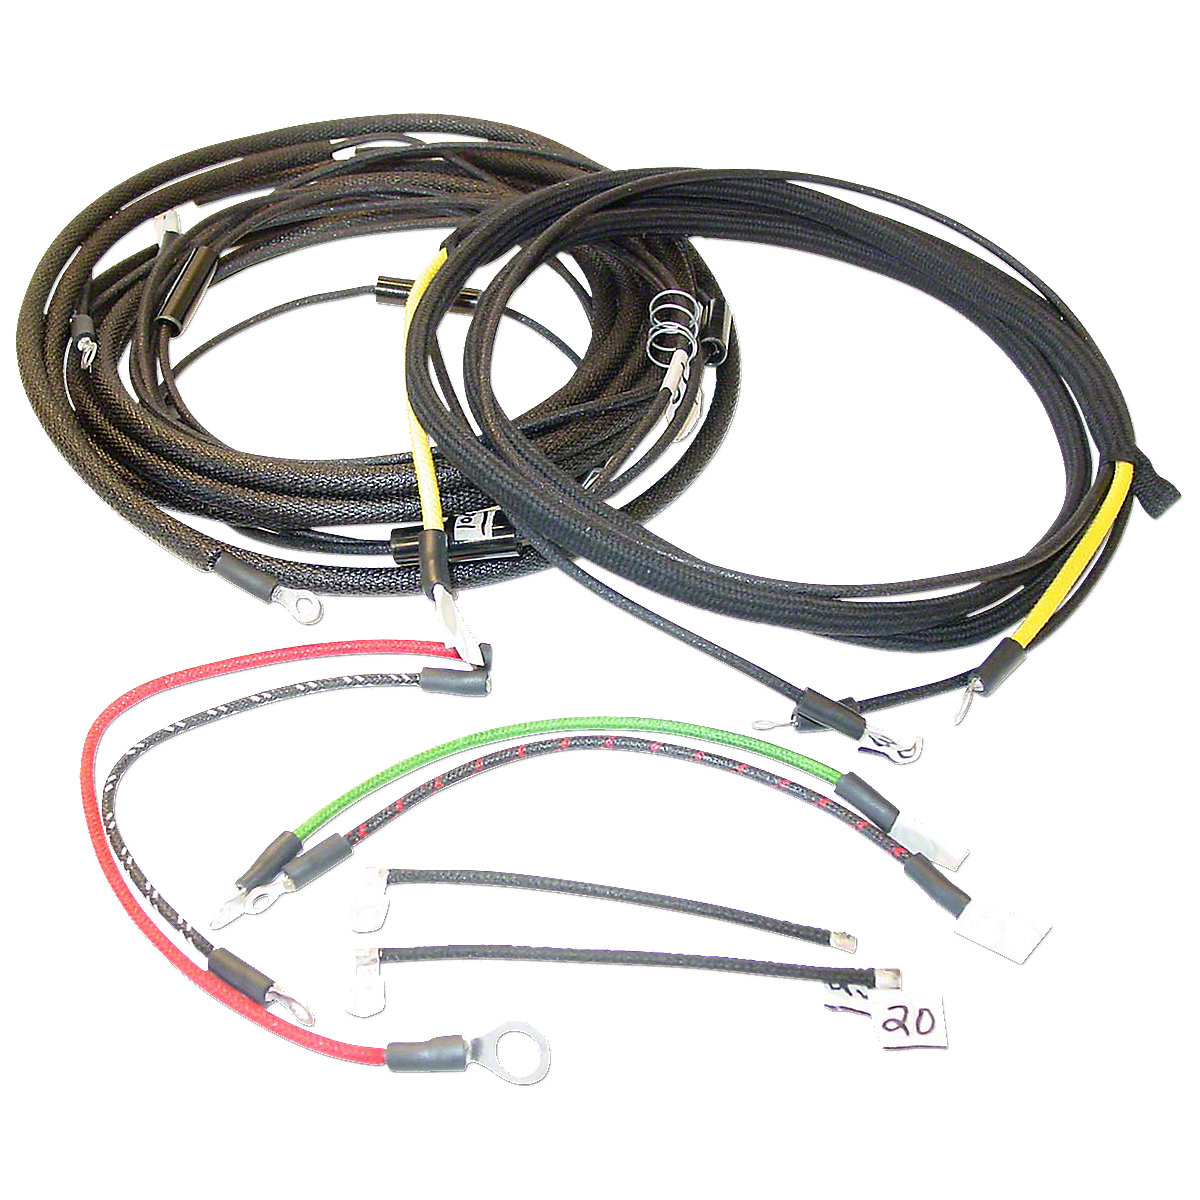 Wiring Harness For Massey Harris: 44 Rowcrop.